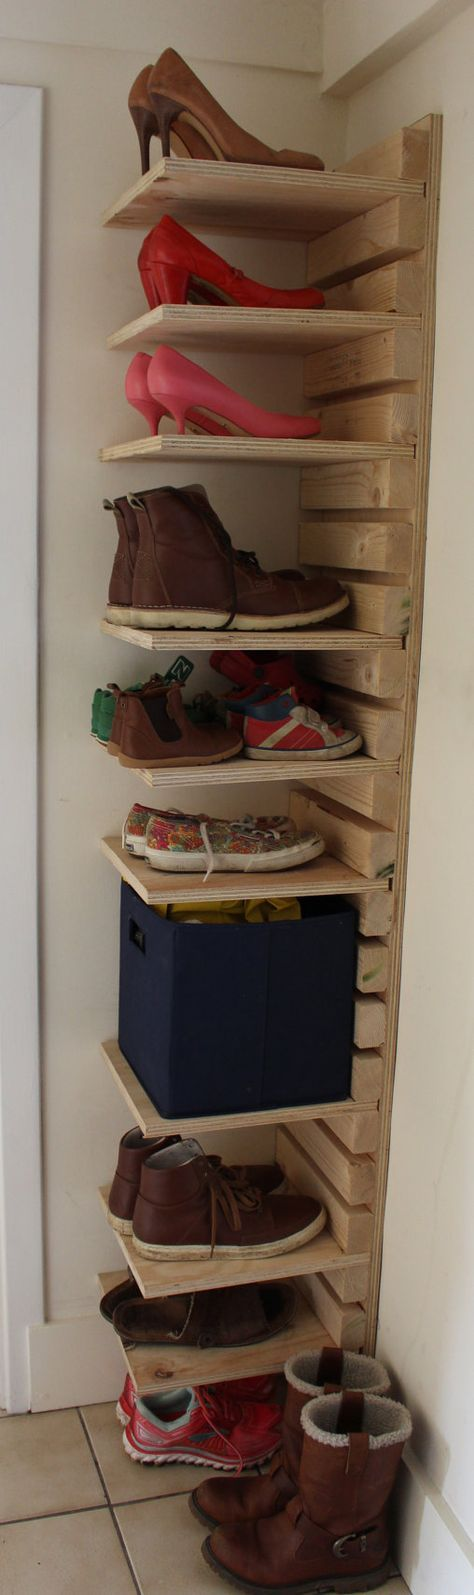 adjustable wooden shoe rack made to order 10 shelf and 22 slat adjustable shoe rack made from heavy duty plywood and spruce height width shelf depth